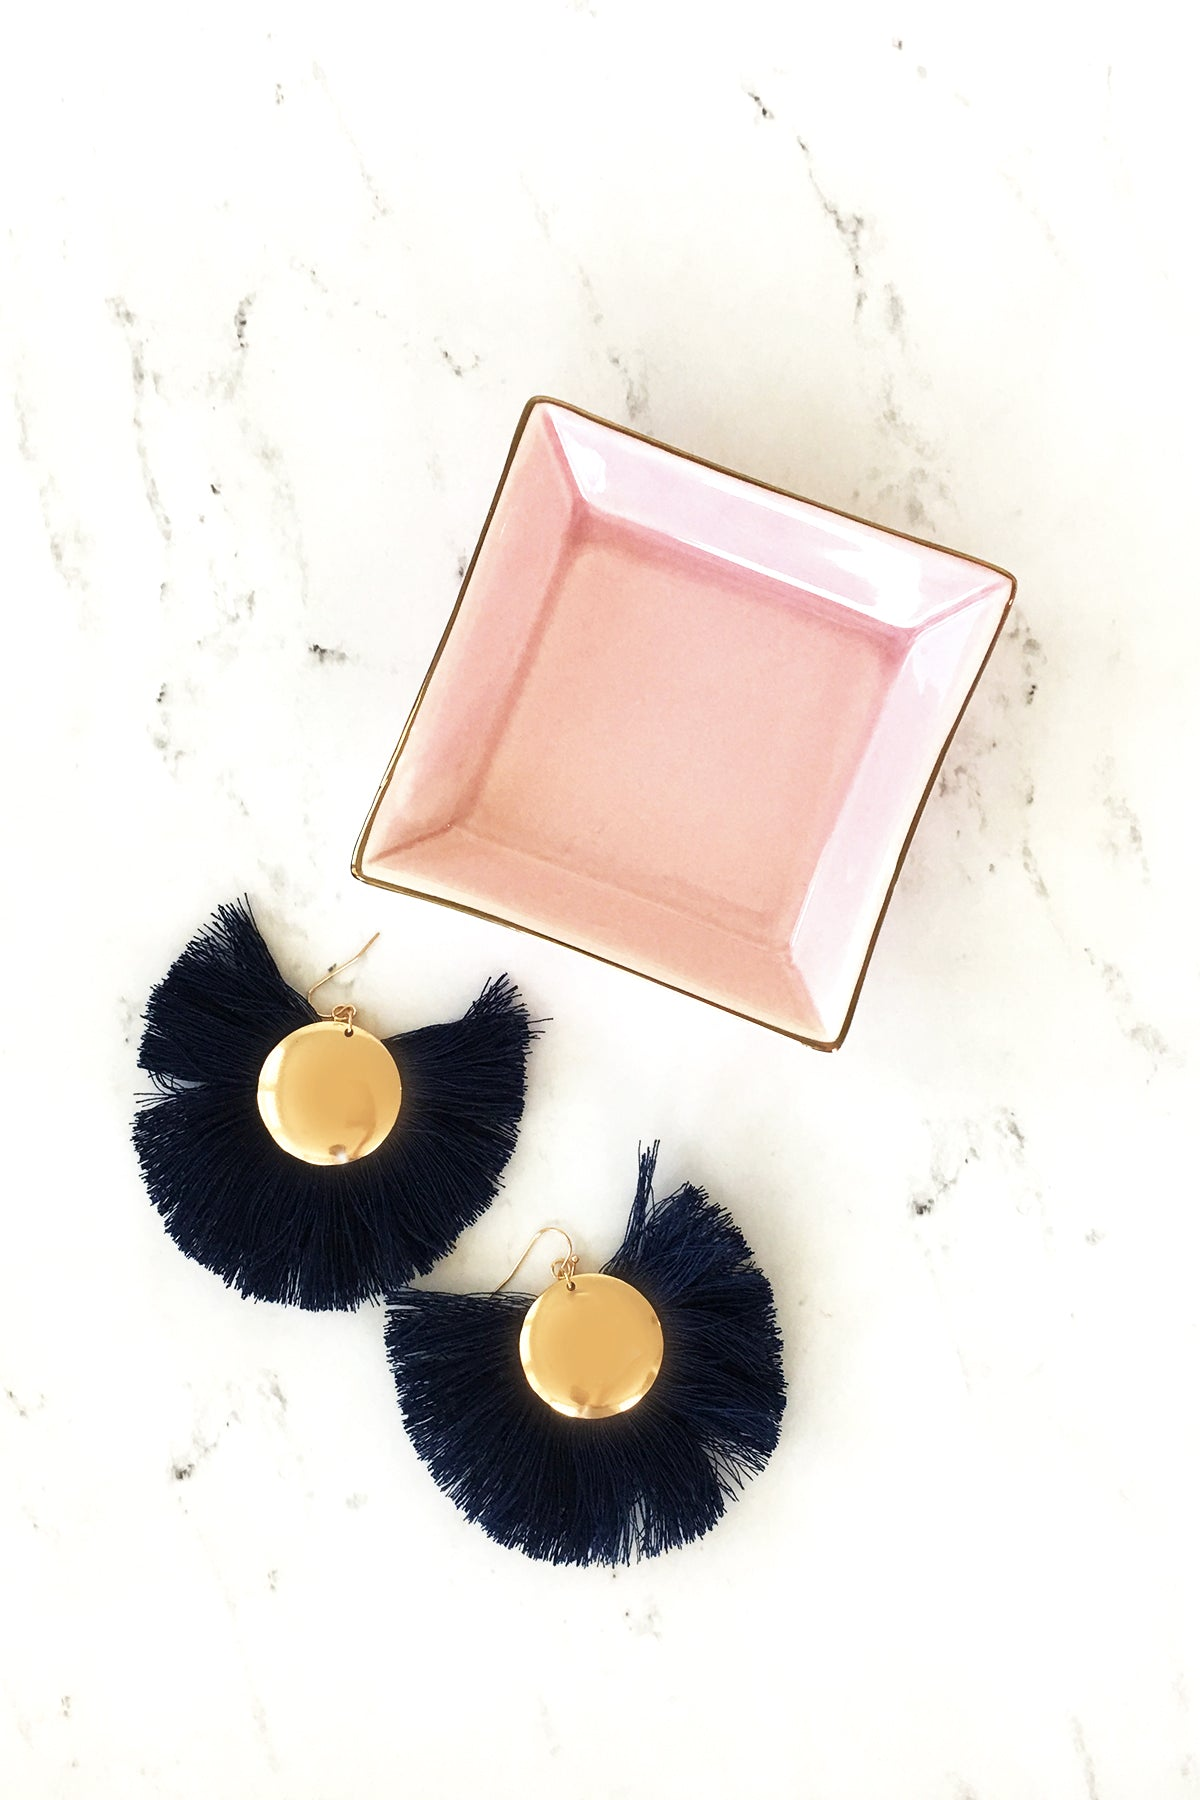 Pink Accessories Dish